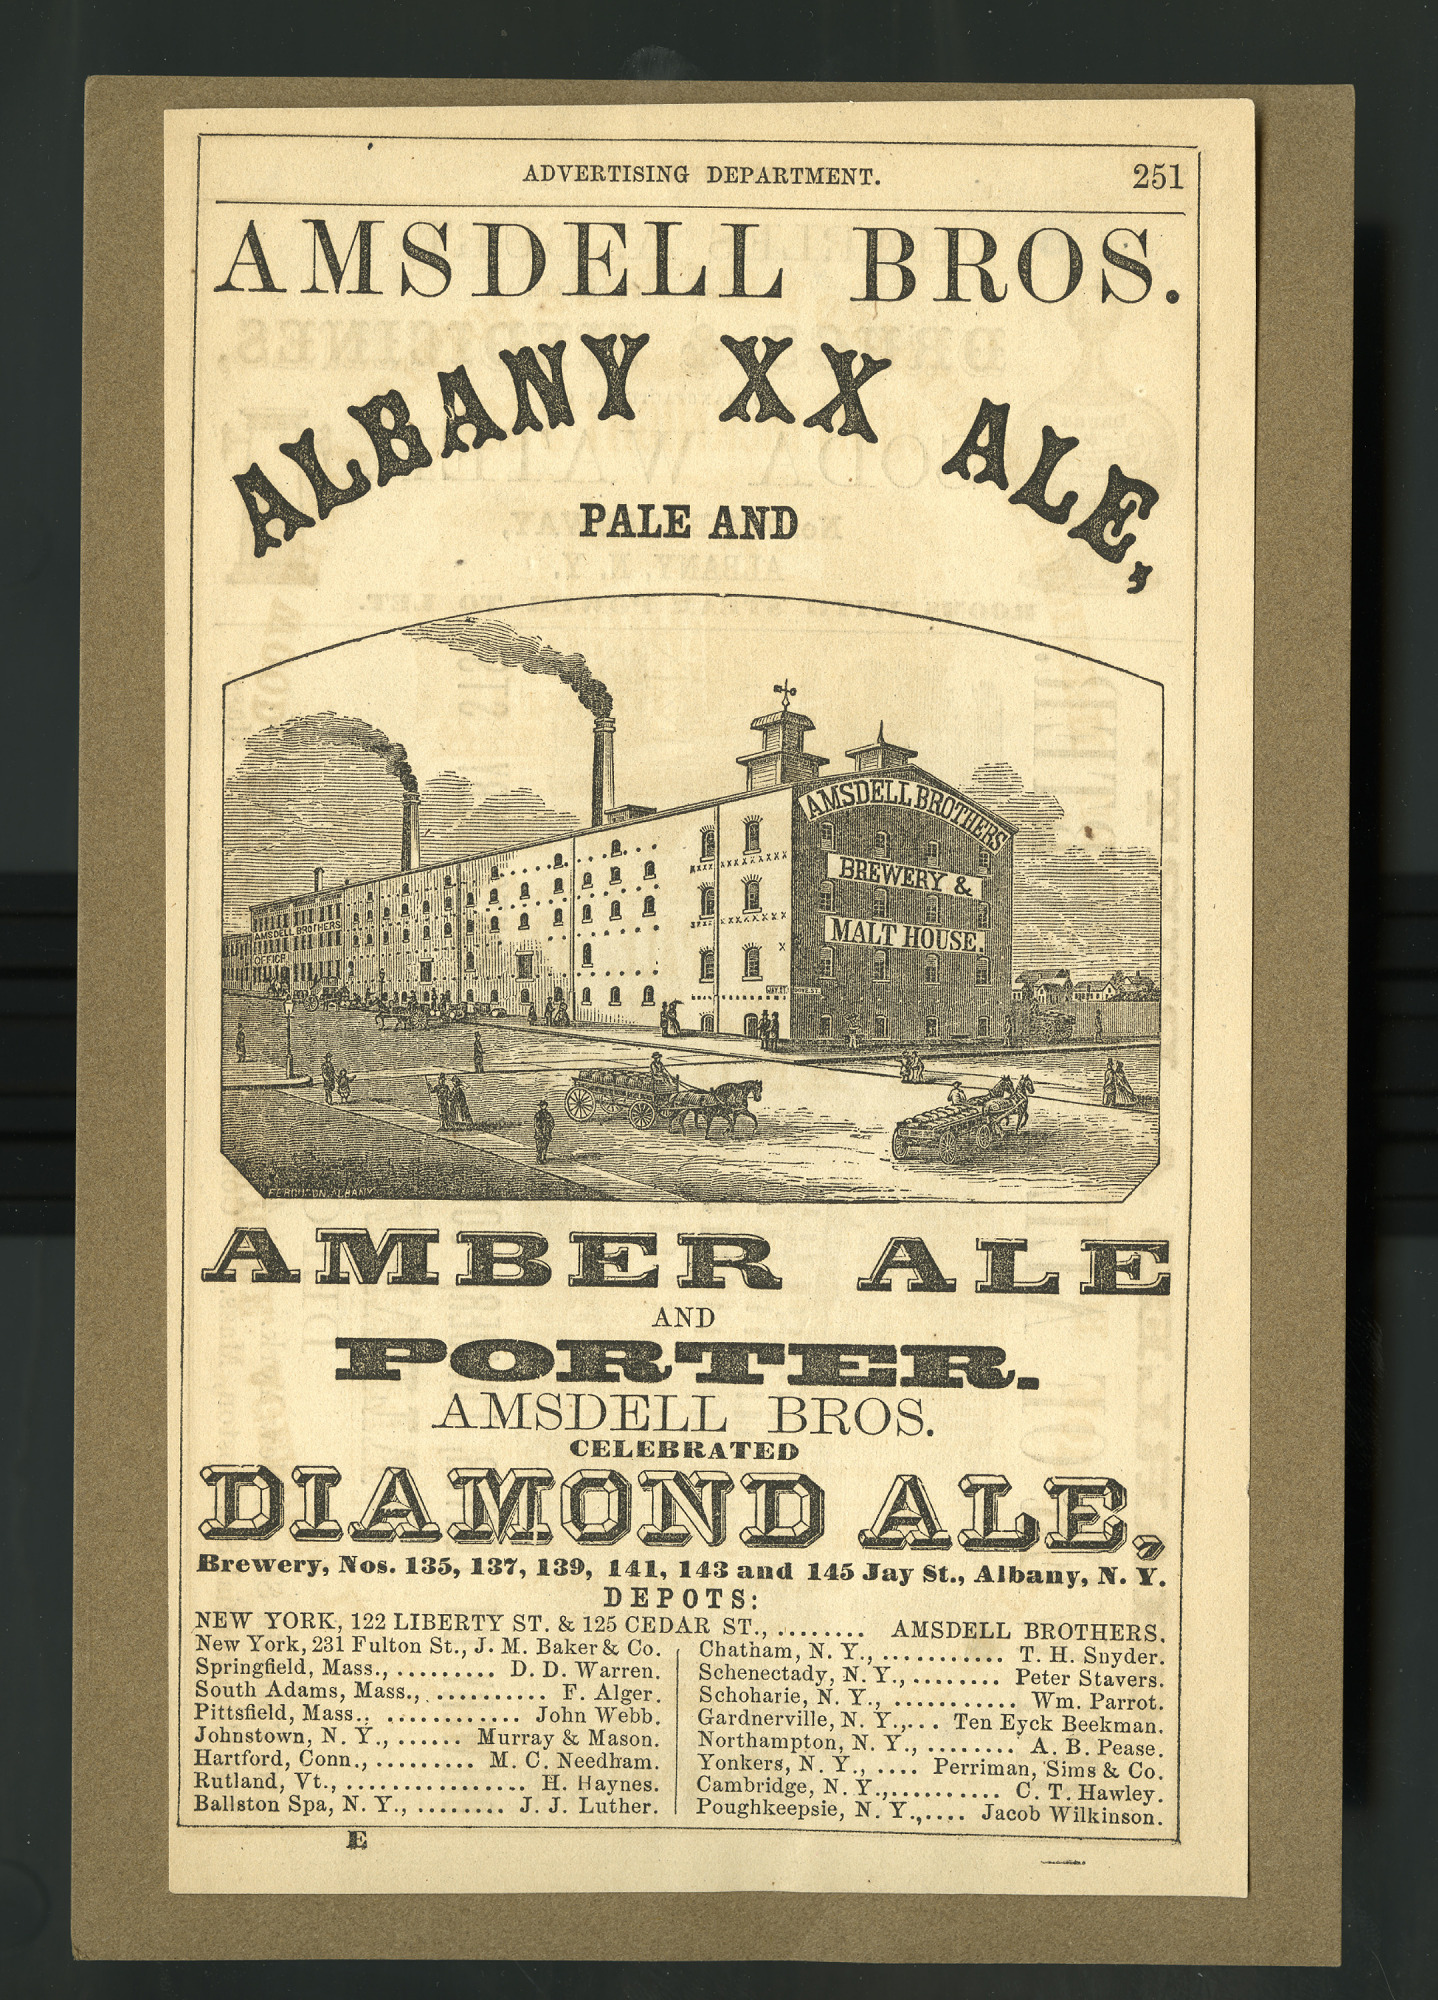 images for Albany XX Ale, / Pale and / Amber Ale and Porter. / Amsdell Bros.' Celebrated / Diamond and Burton Ale. advertisement